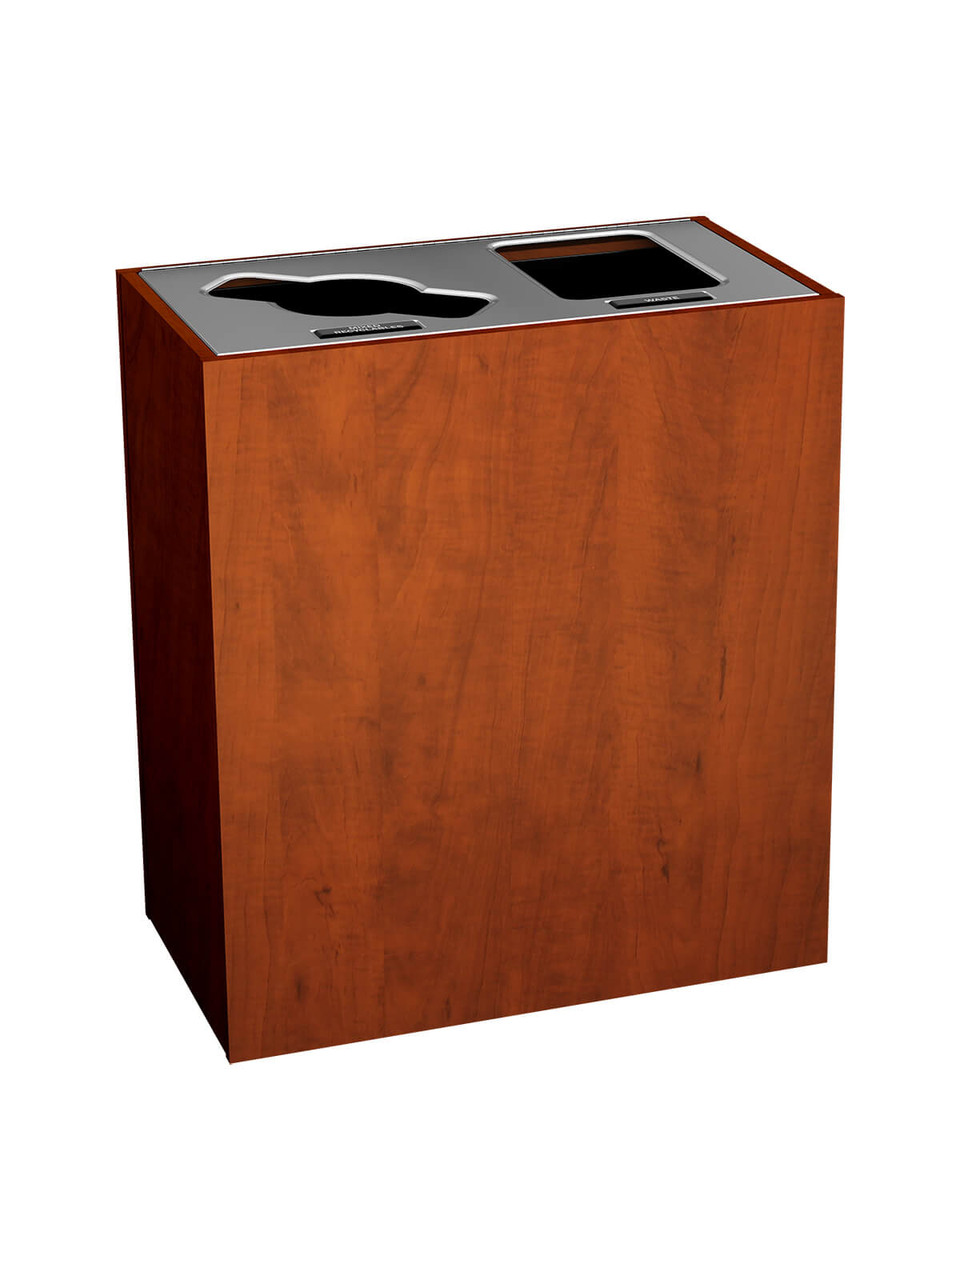 2 Stream 43 Gallon Aristata Tier 3 Recycling Bin 90932 Summer Flame, Mixed, Full Openings